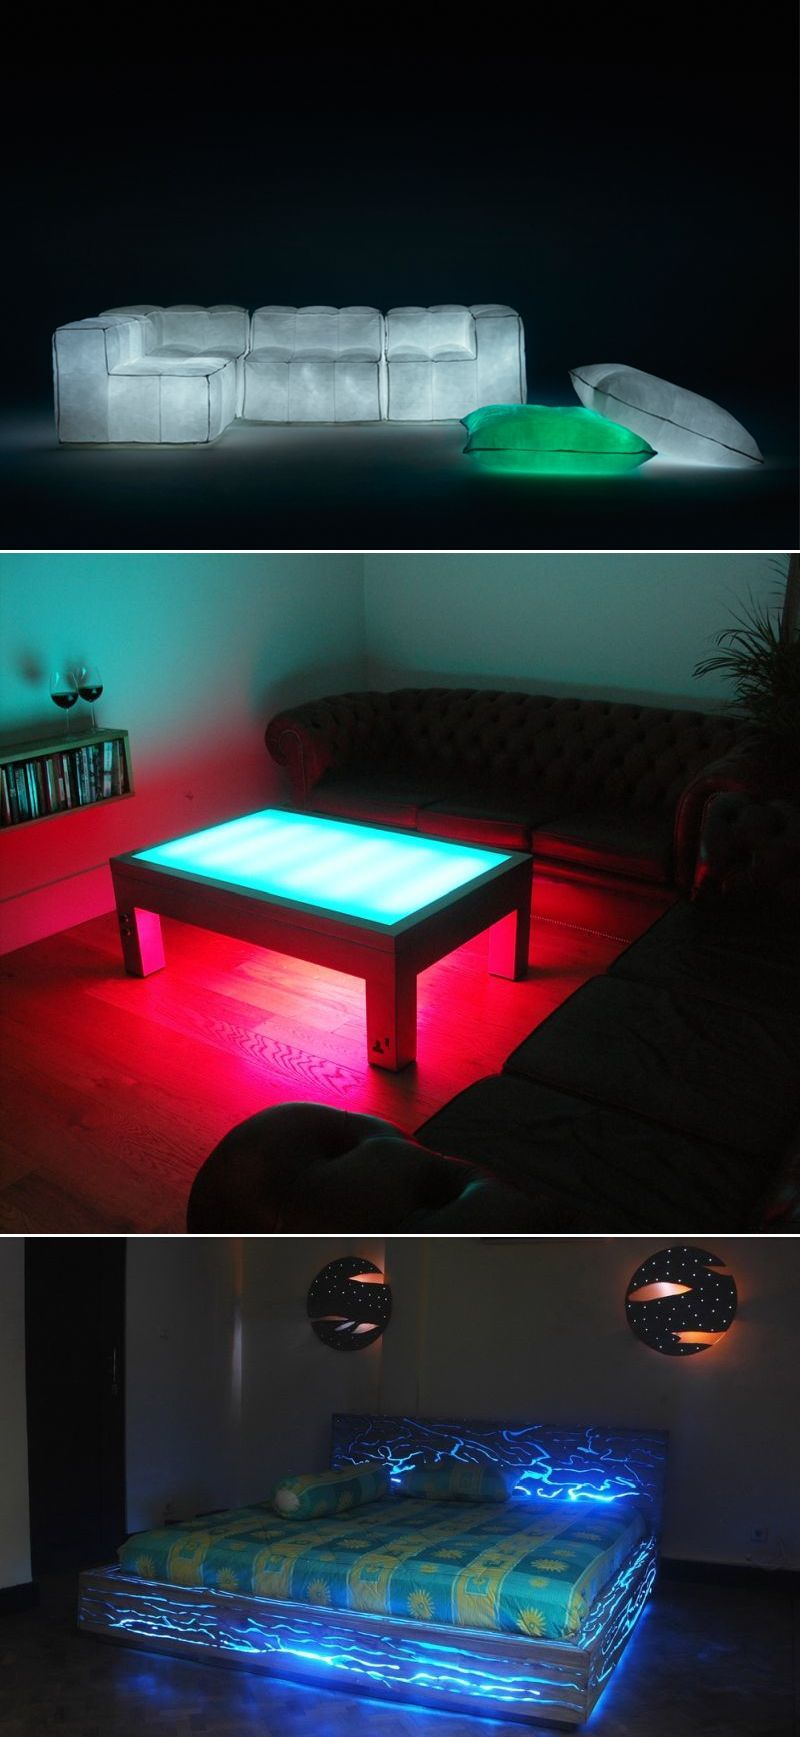 Glow In The Dark Furniture Throughout 30 Glowinthedark Furniture To Enlighten Your Spirits Furniture